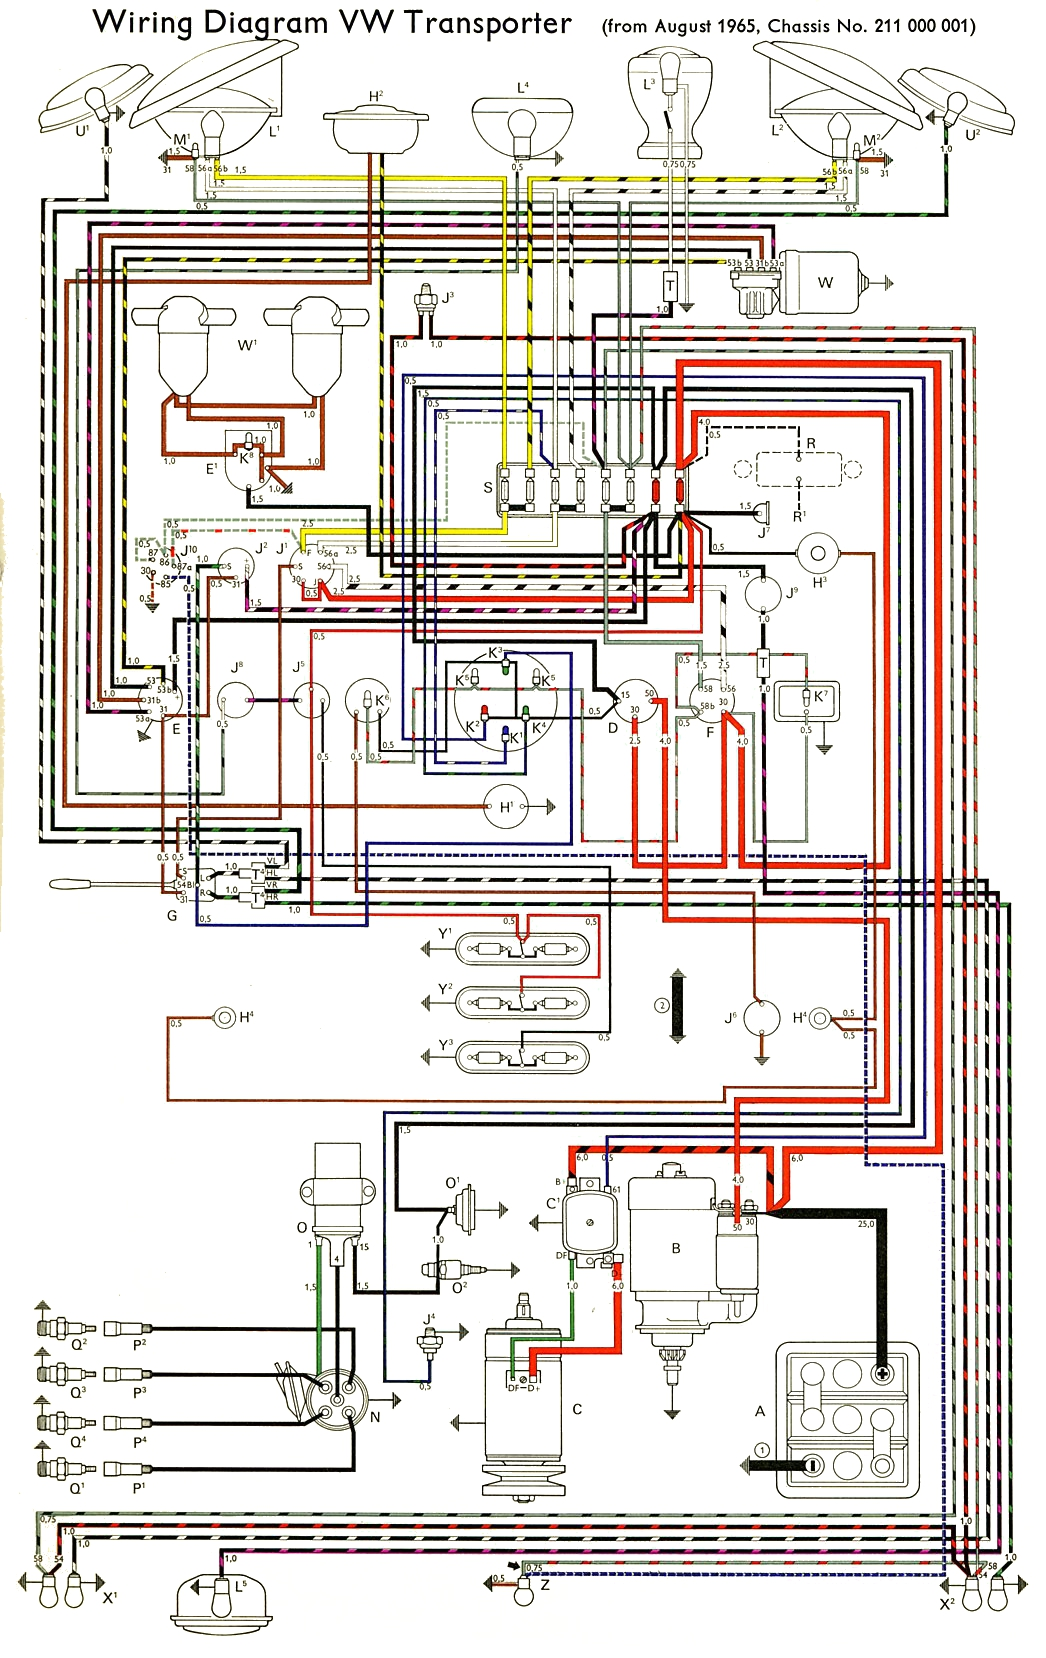 vw car wiring diagram vw t4 stereo wiring diagram wiring diagrams and schematics 2002 vw beetle car stereo system wiring